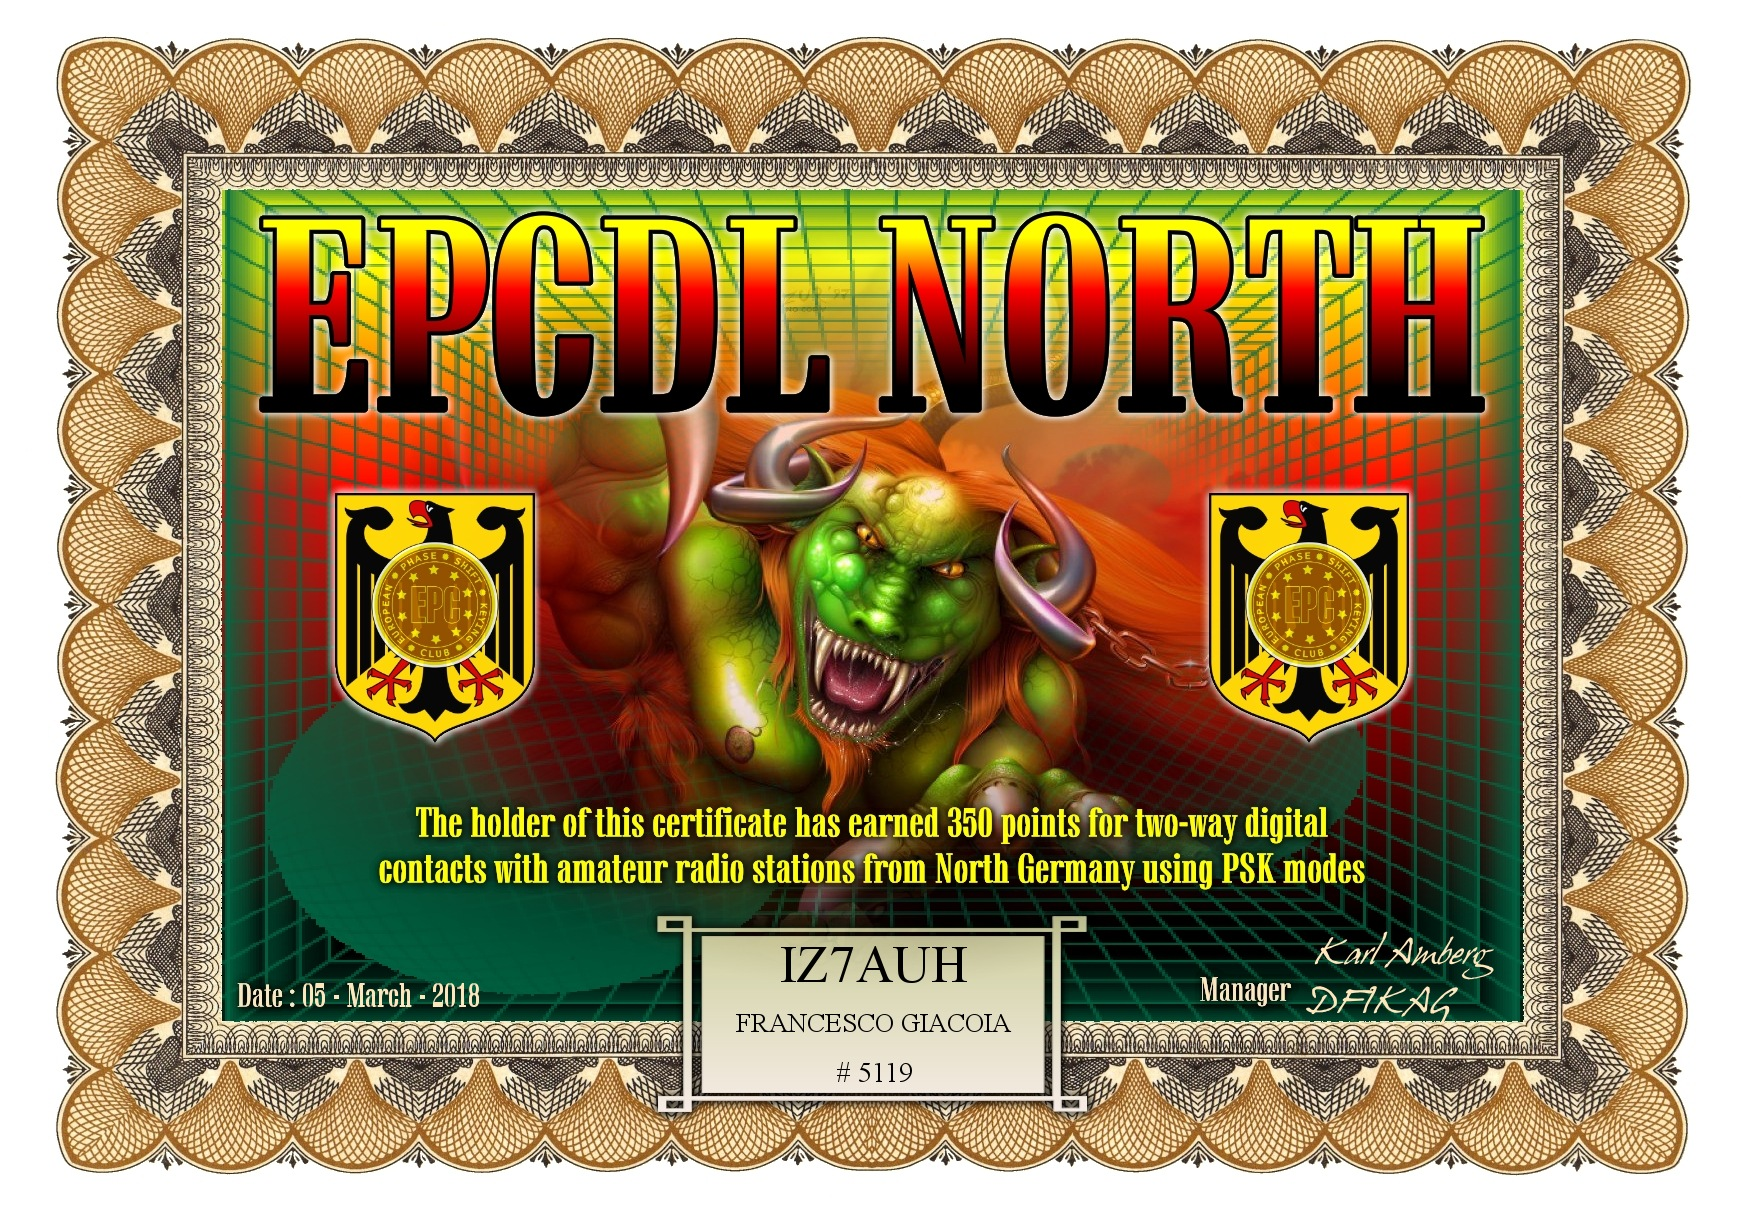 IZ7AUH-EPCDL-NORTH